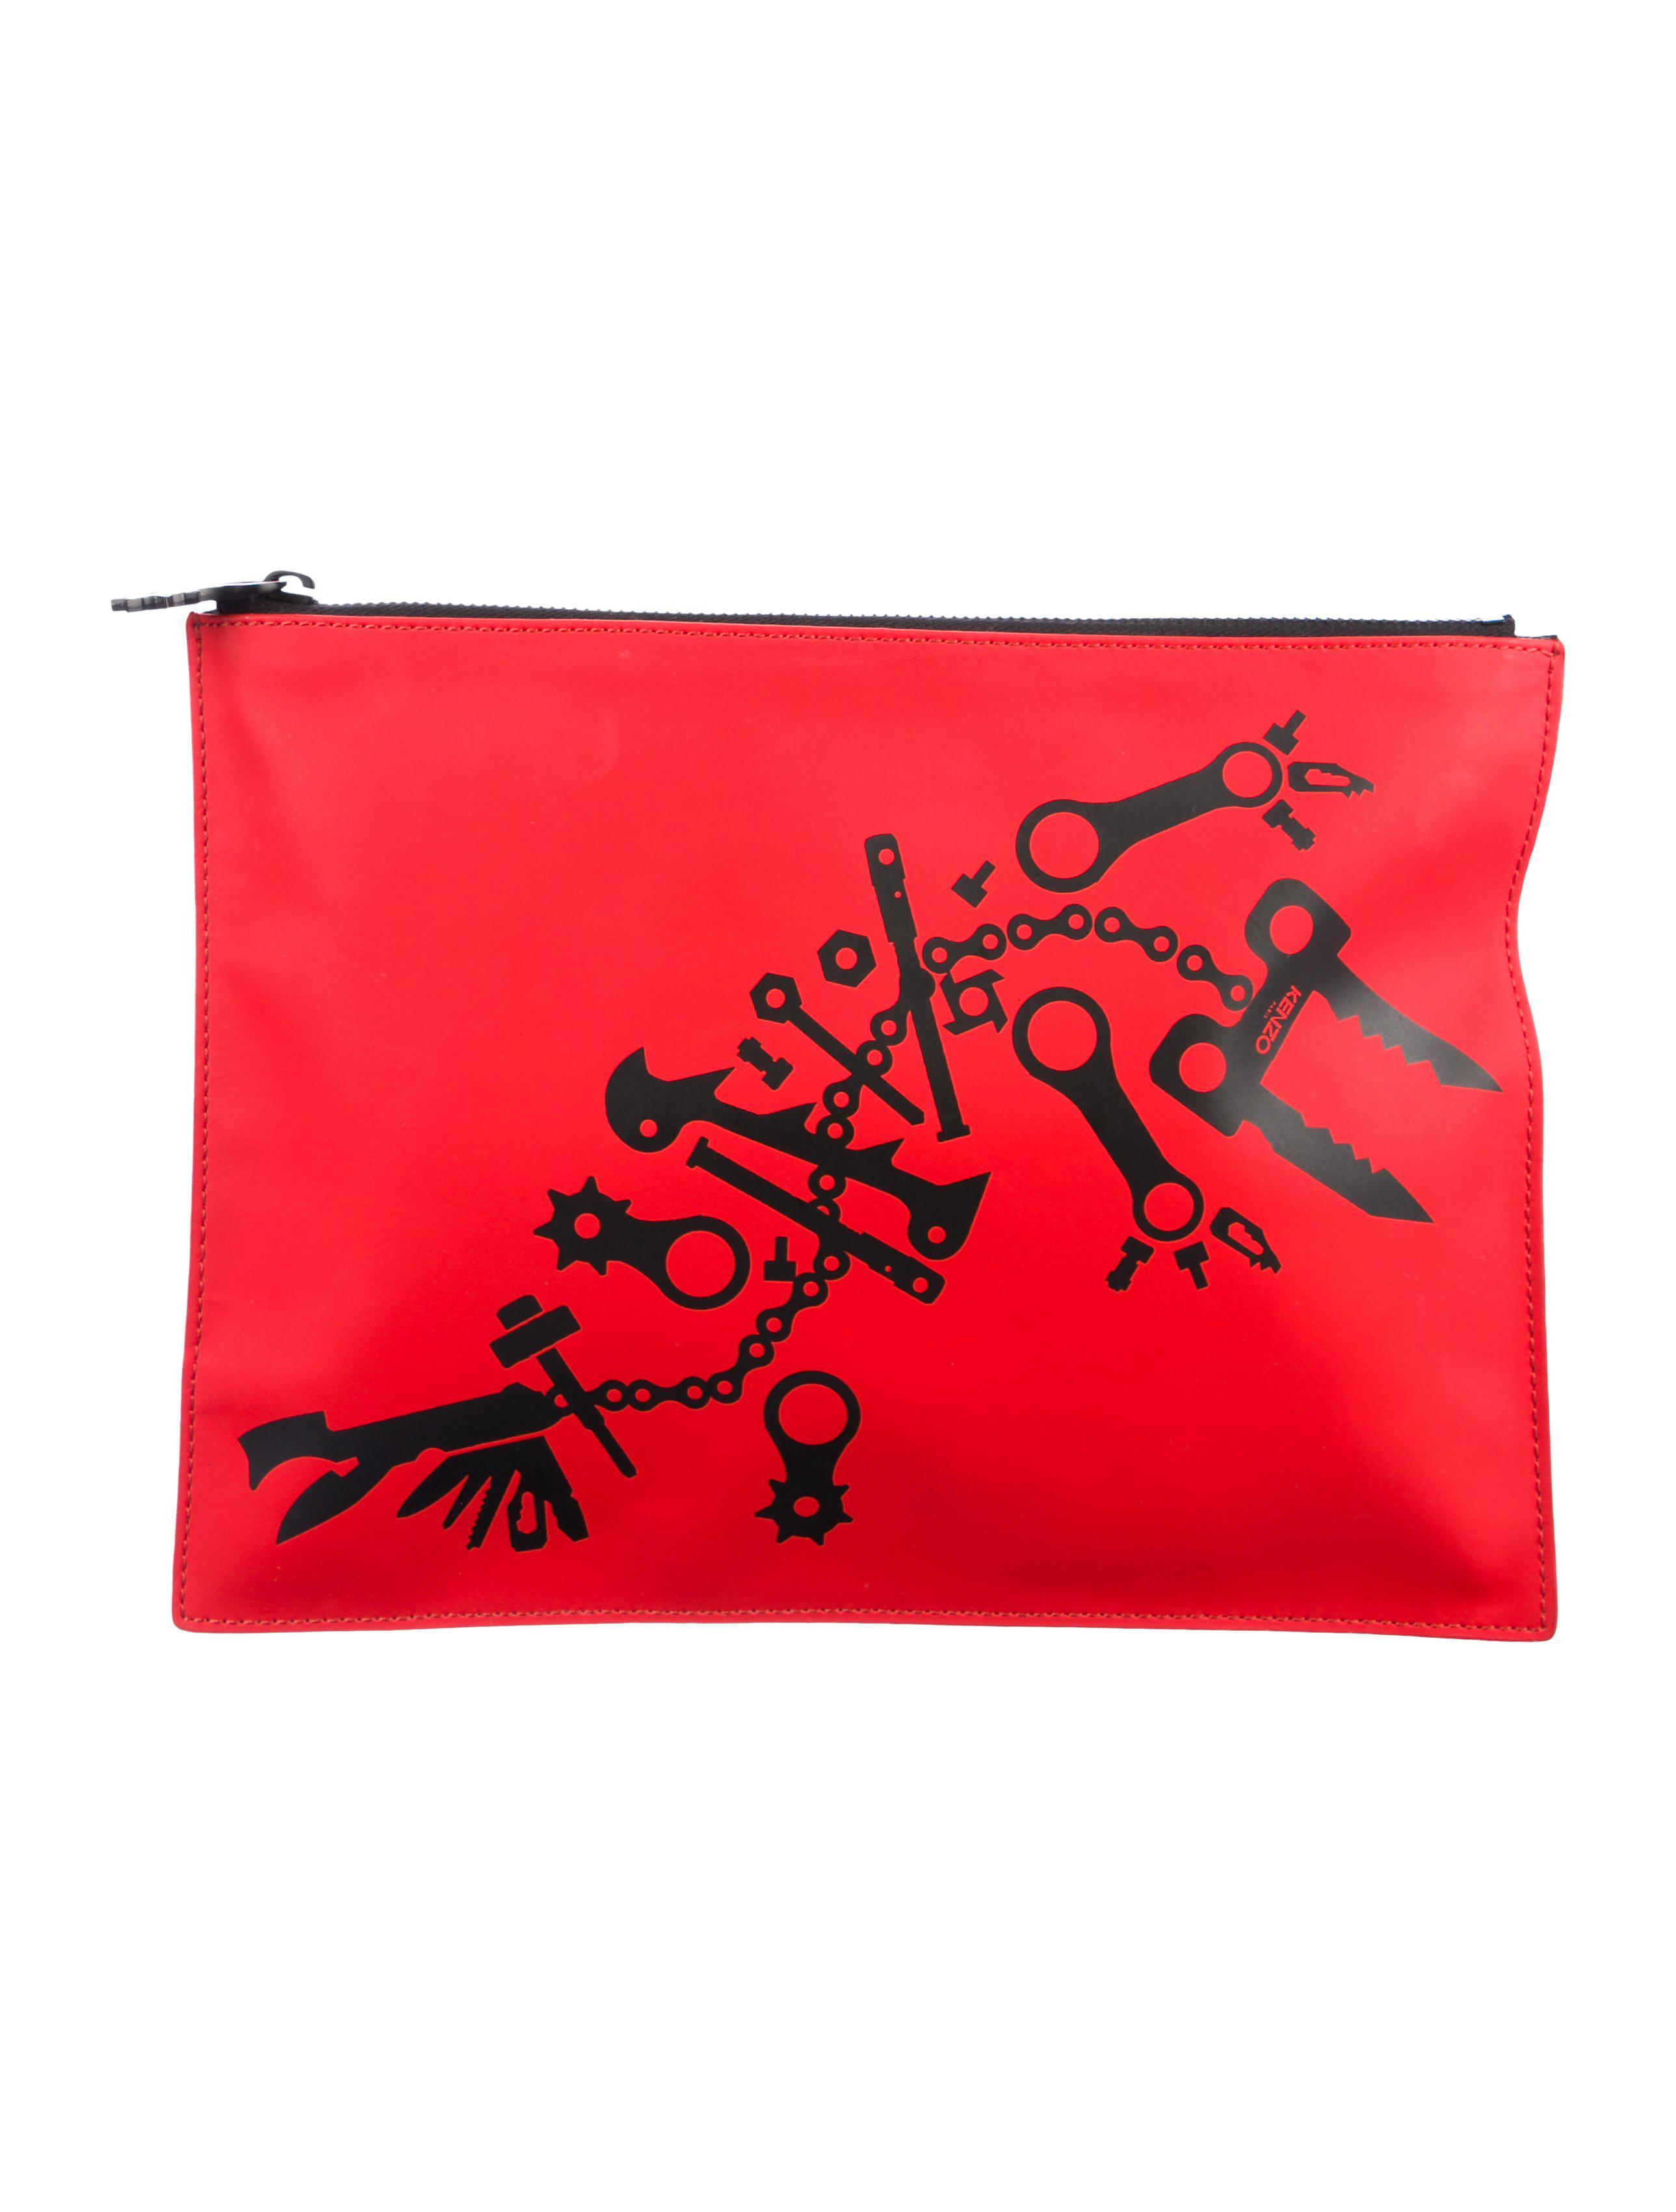 02c315b9 Lyst - Kenzo Coated Canvas Zip Pouch in Red